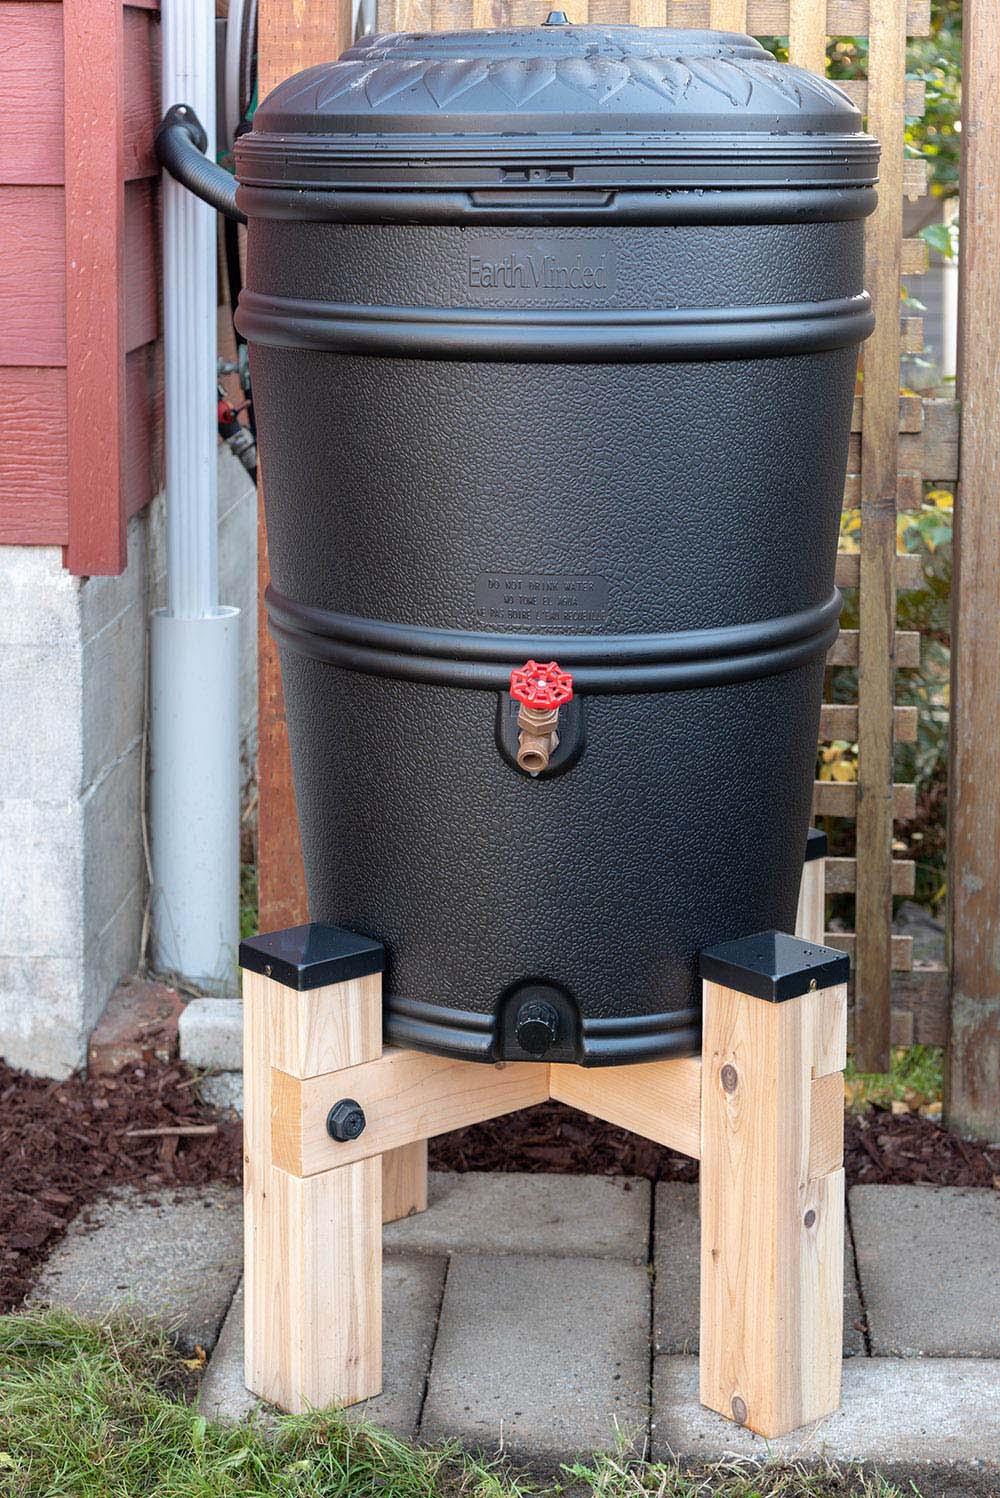 A installed black rain barrel sitting on a wooden stand.